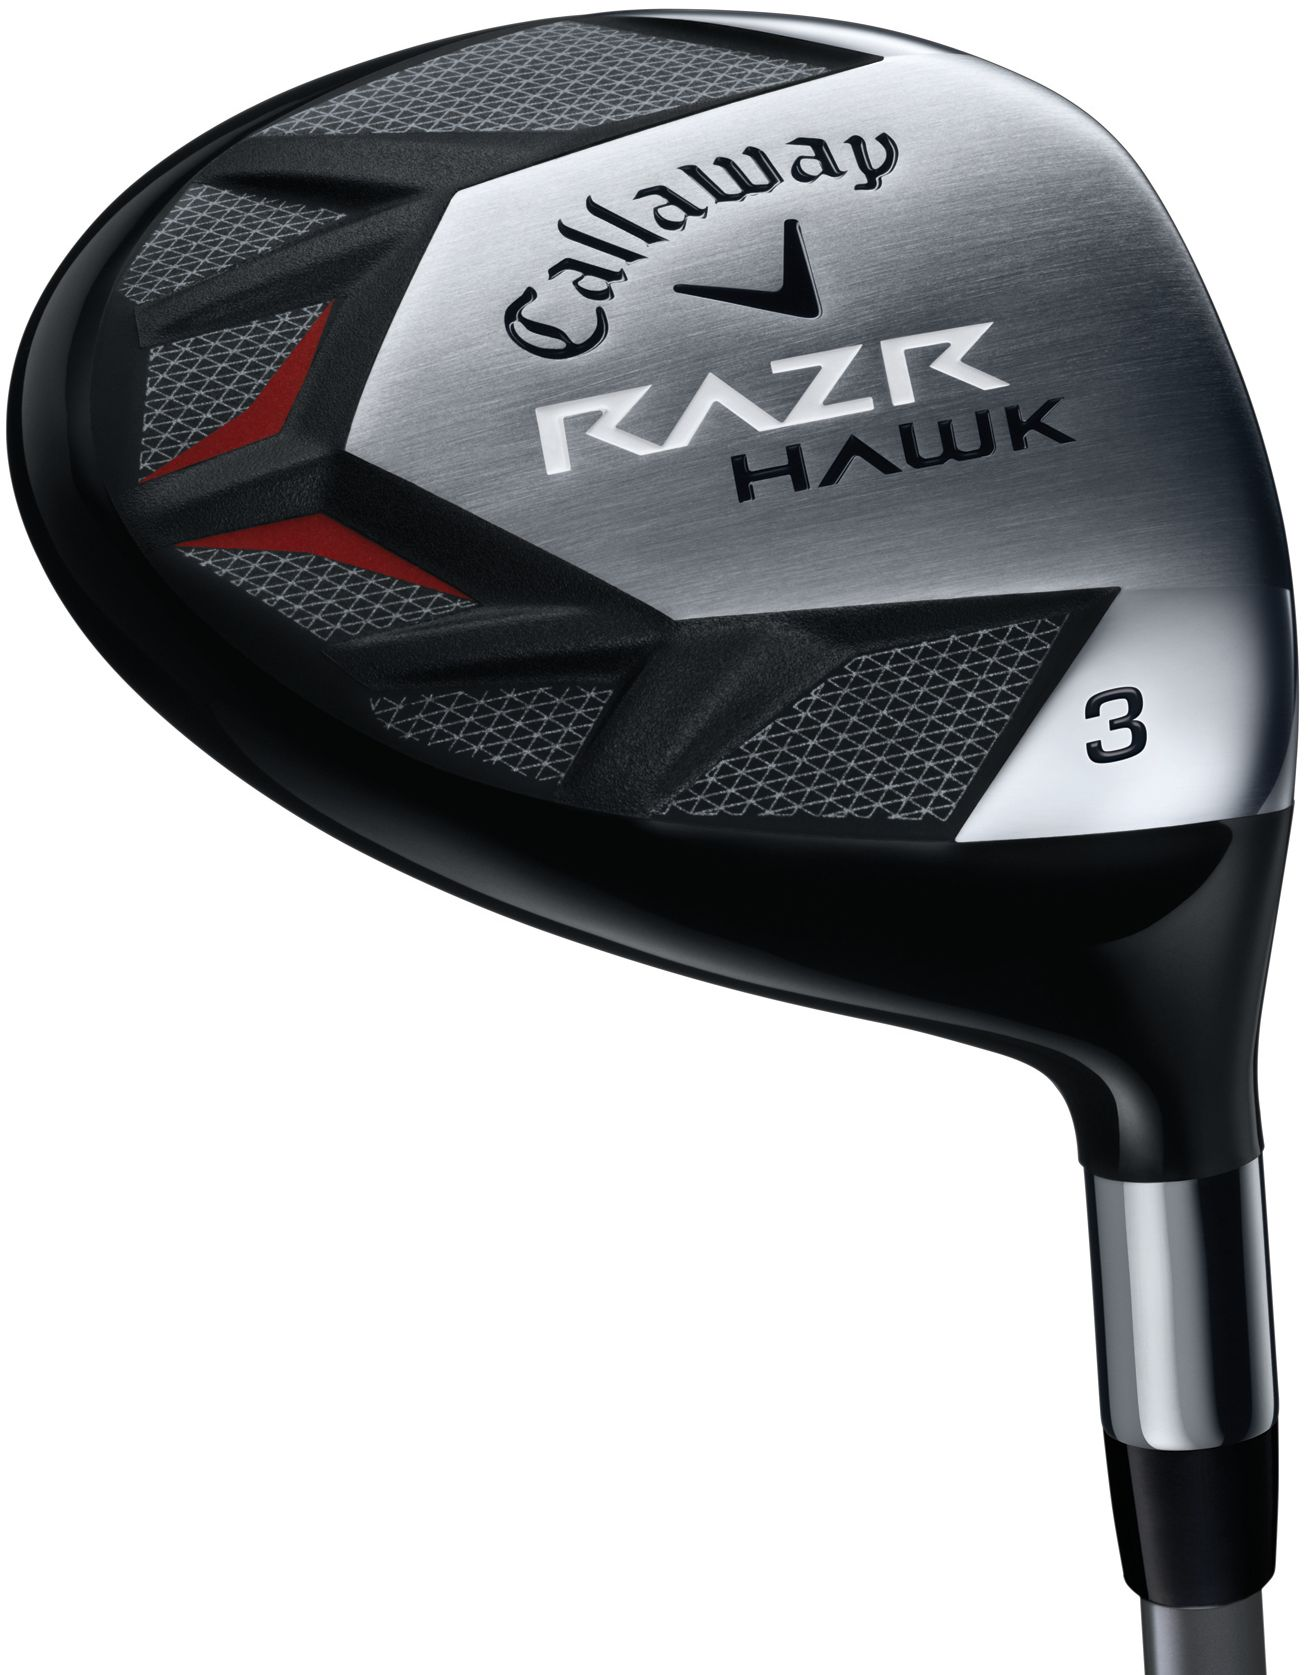 Callaway Women's RAZR Hawk Fairway